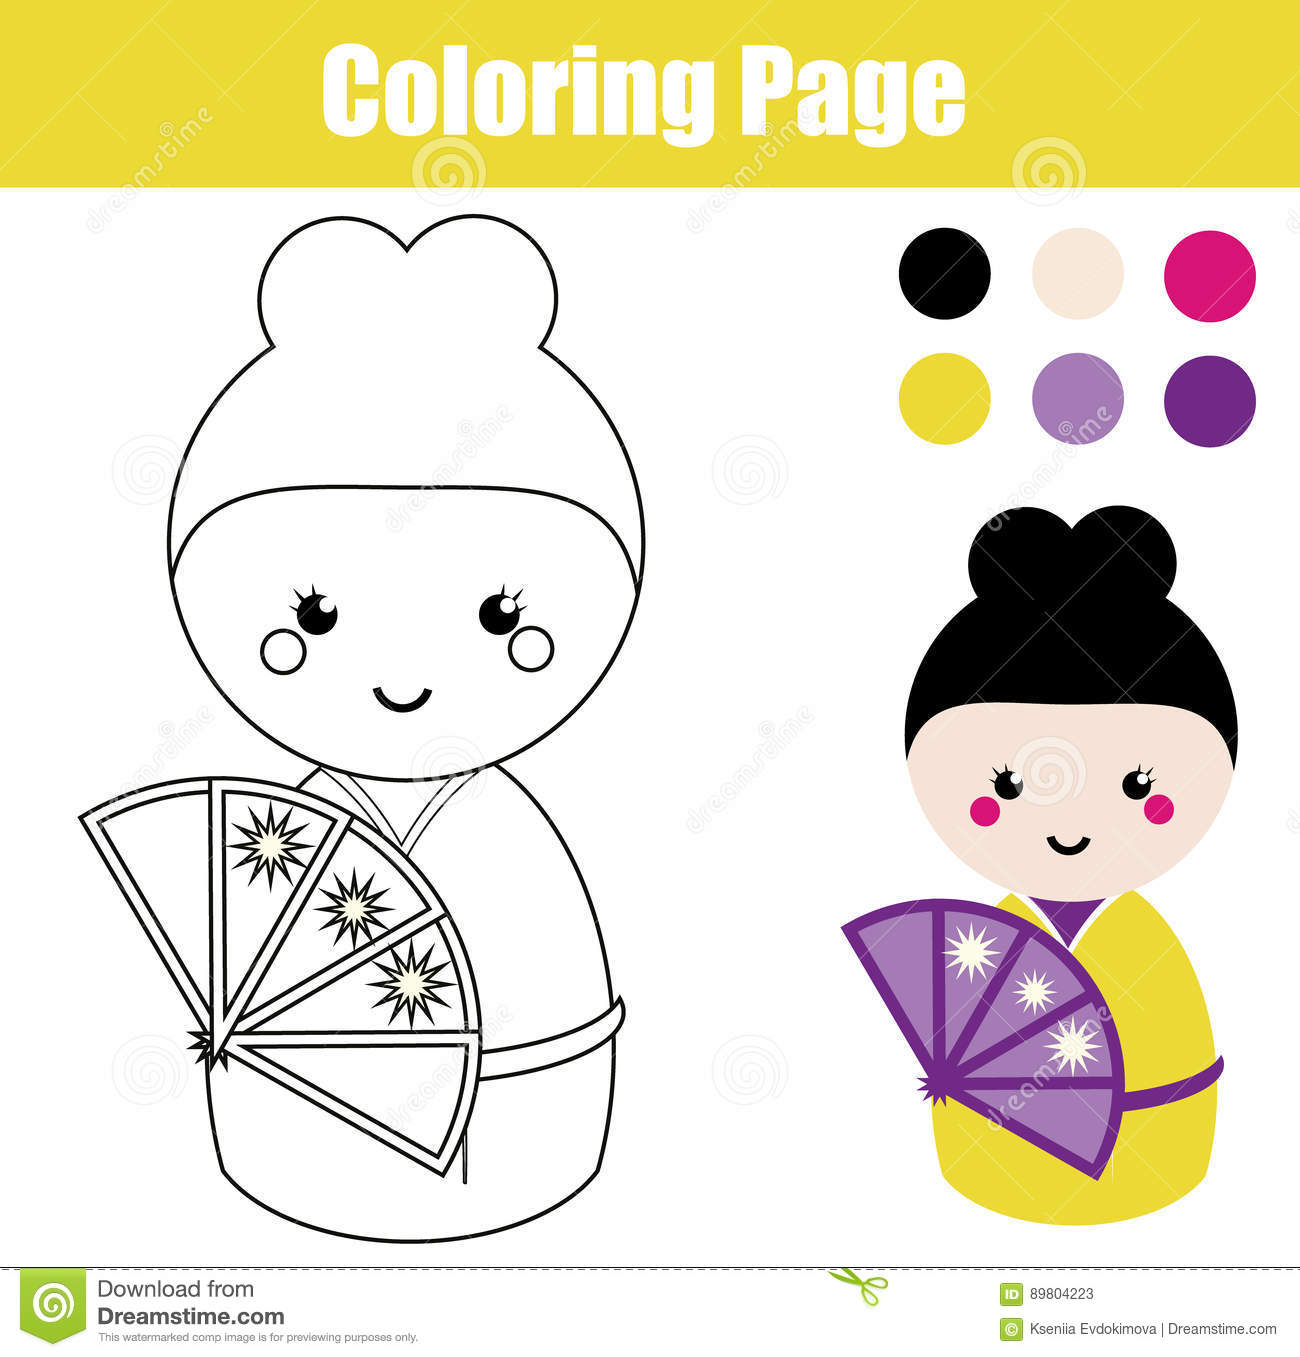 Coloring Page With Cute Japanese Kokeshi Doll Children Educational Game Drawing Activity Stock